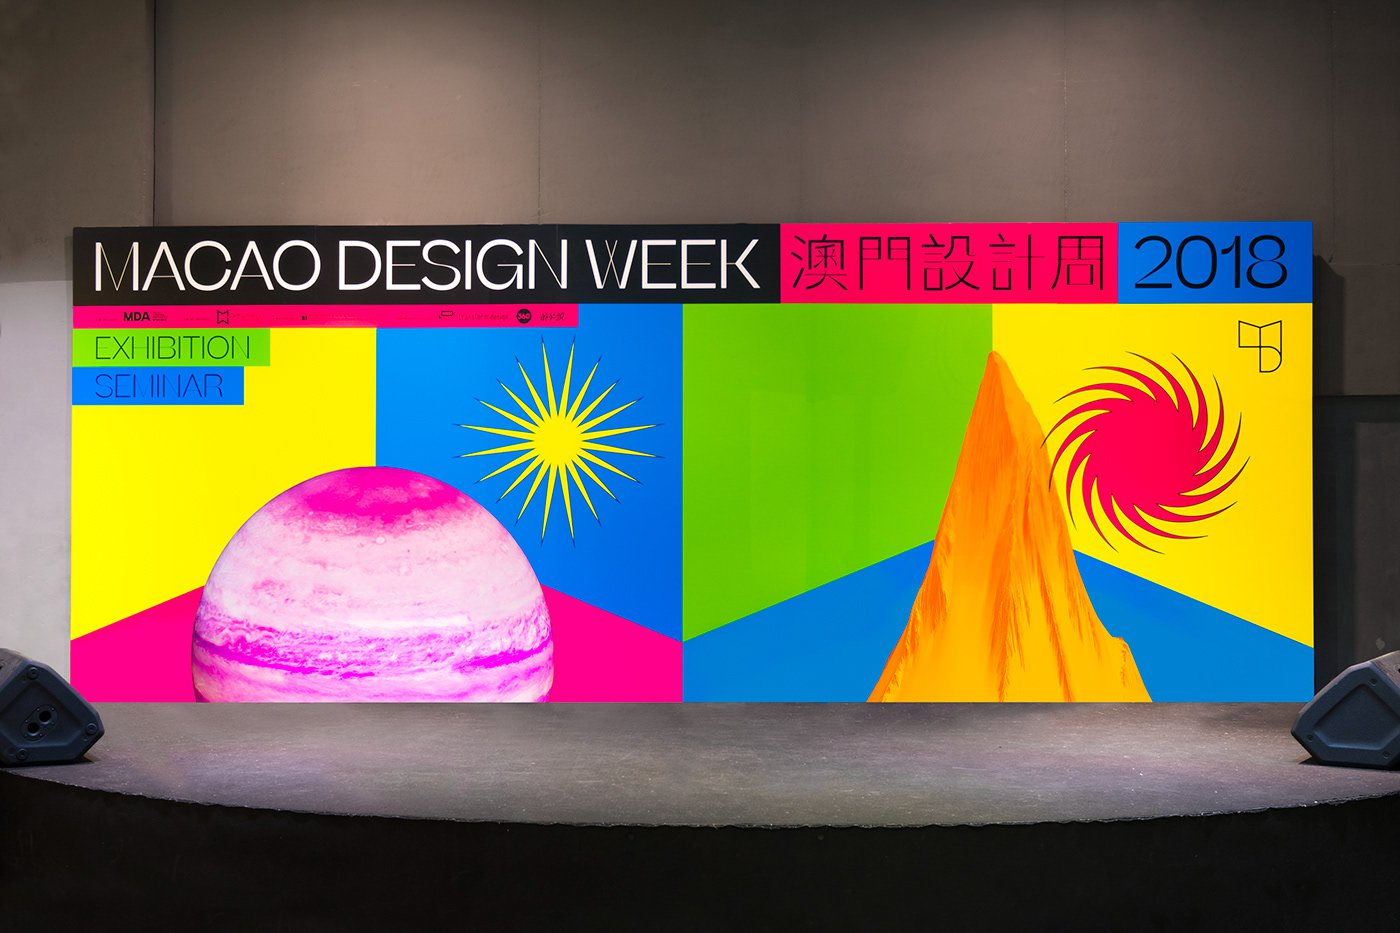 Macau-Design-Week-Beatrice-Display-2